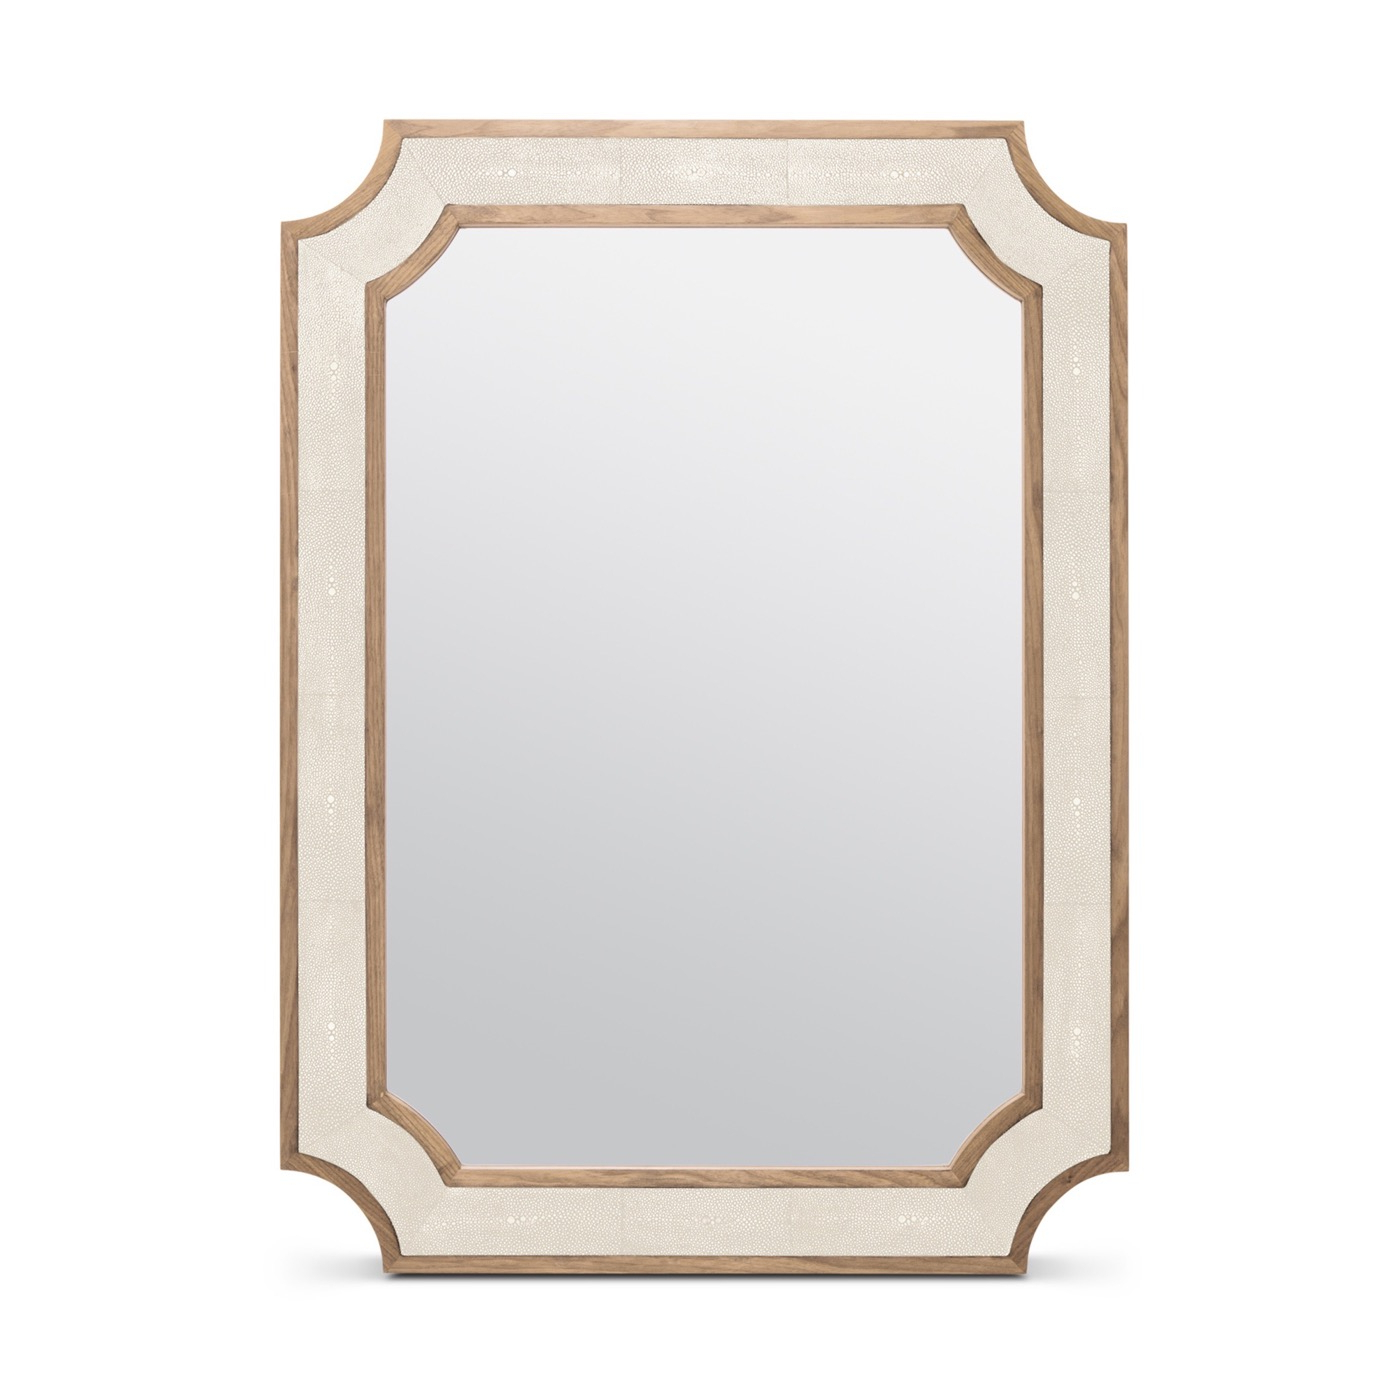 Ivory Throughout Most Current Ivory Wall Mirrors (View 8 of 20)